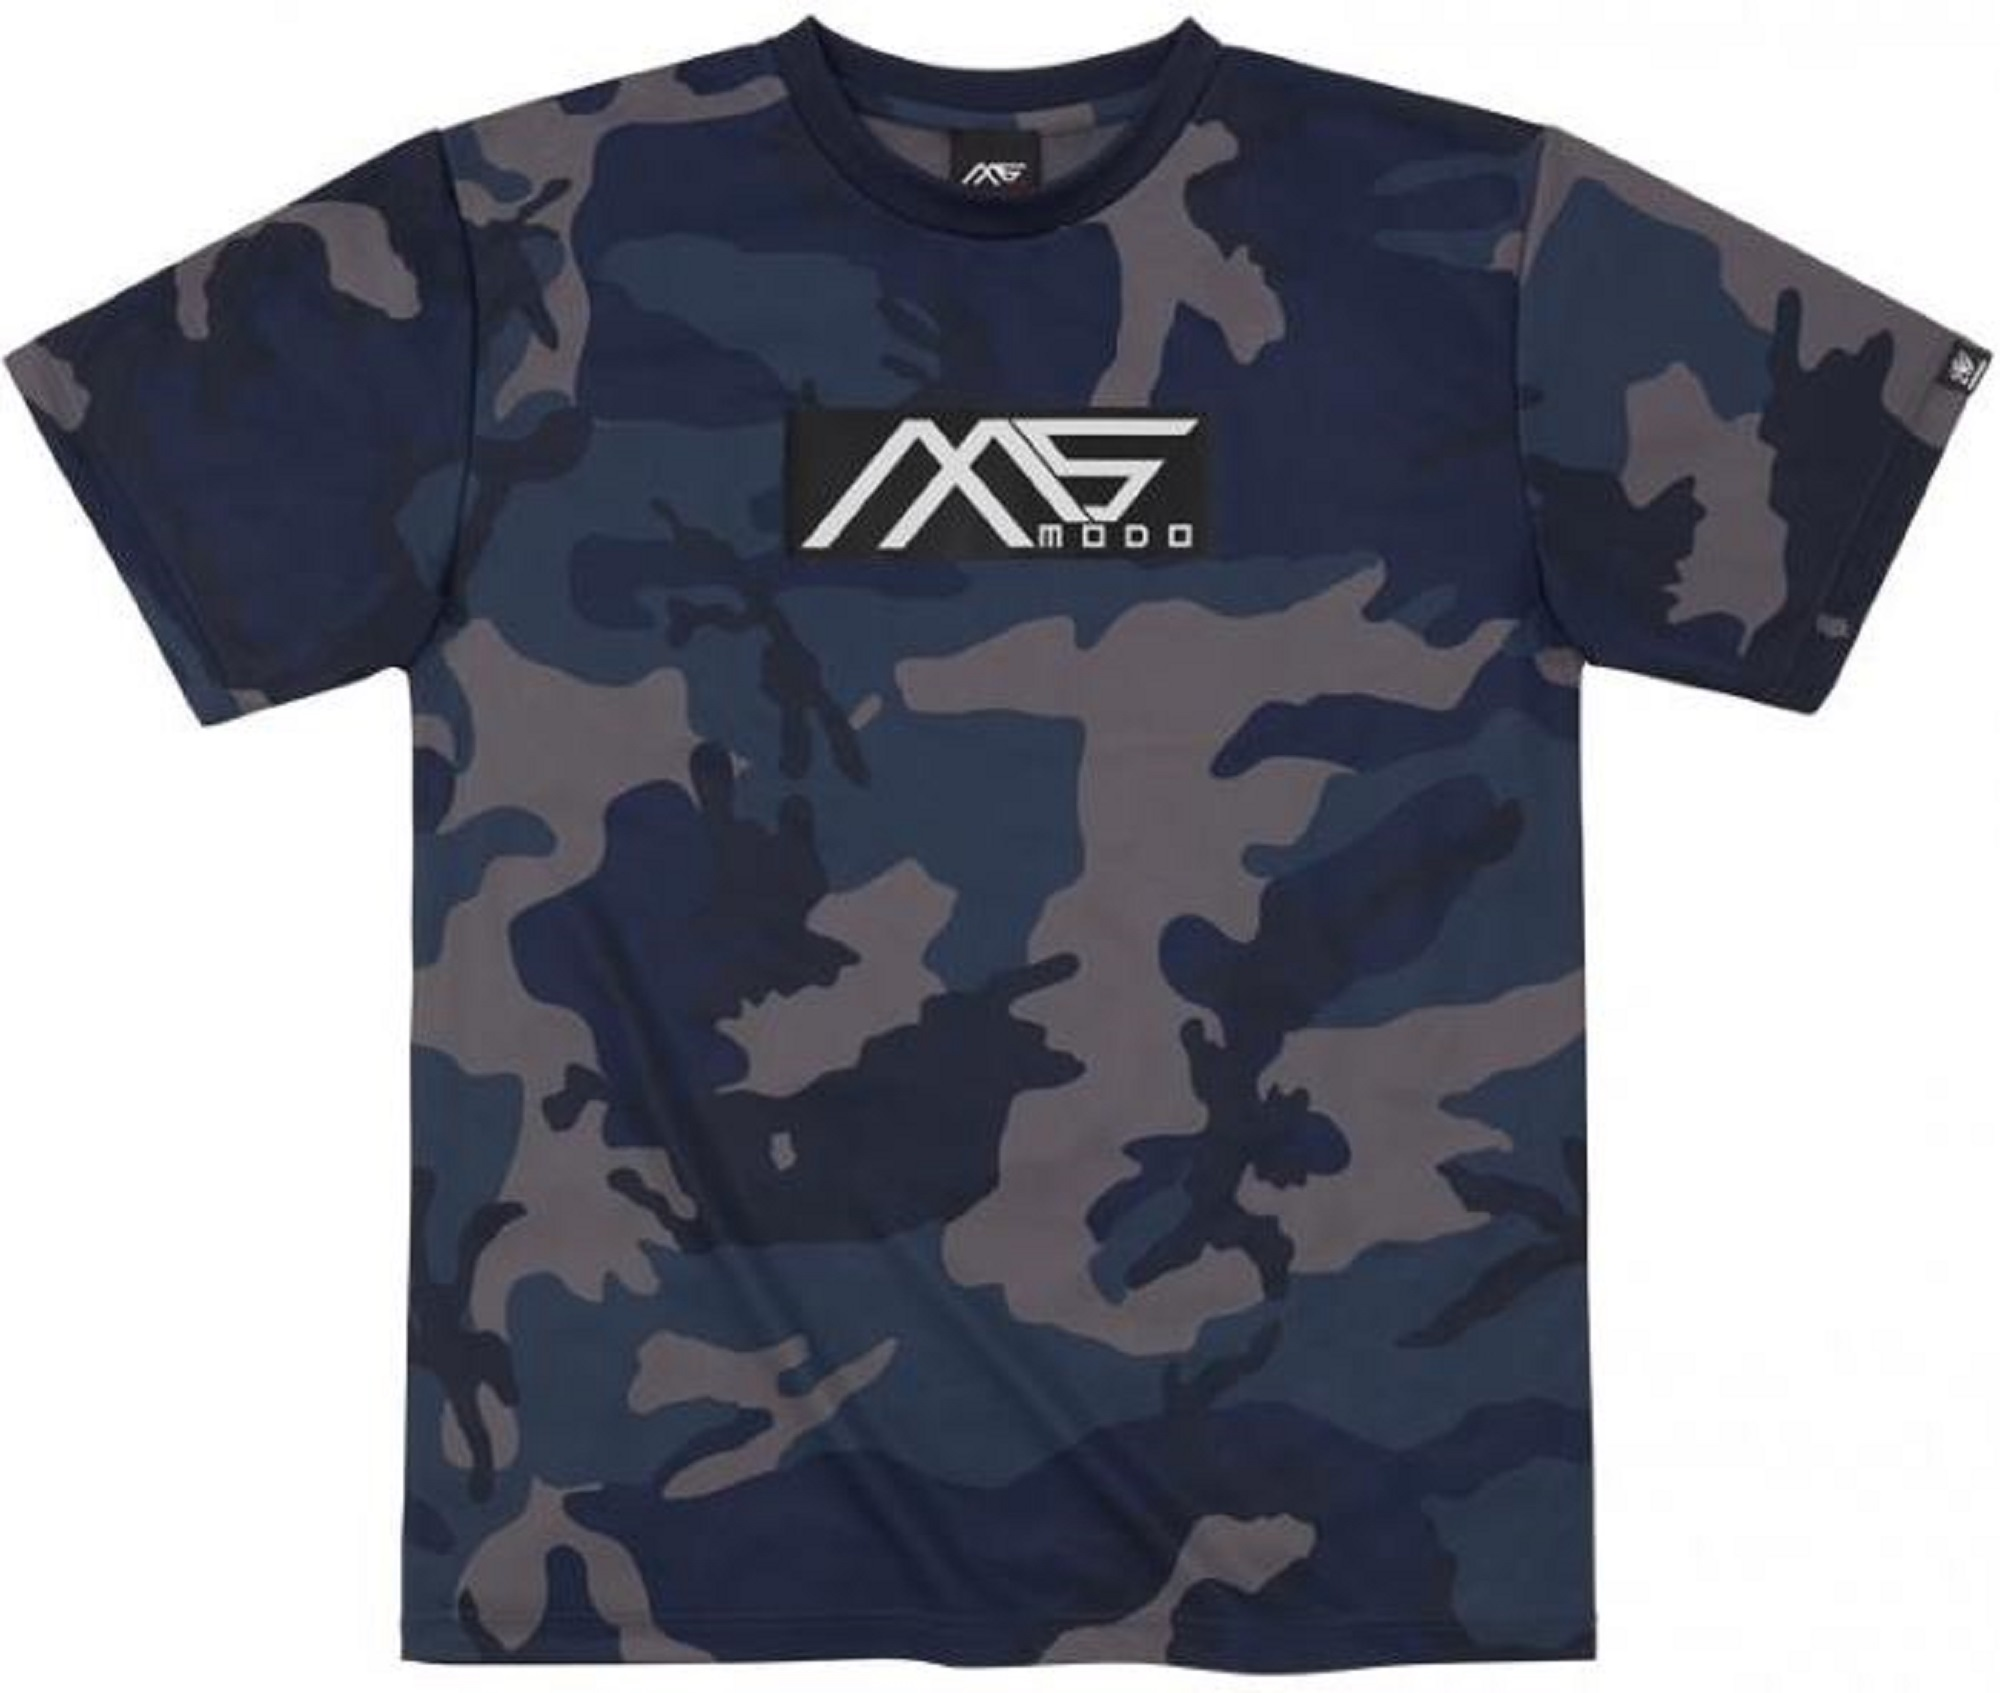 Evergreen T-Shirt Dry Fit Short Sleeve MS-modo Size S Navy Camou (6283)